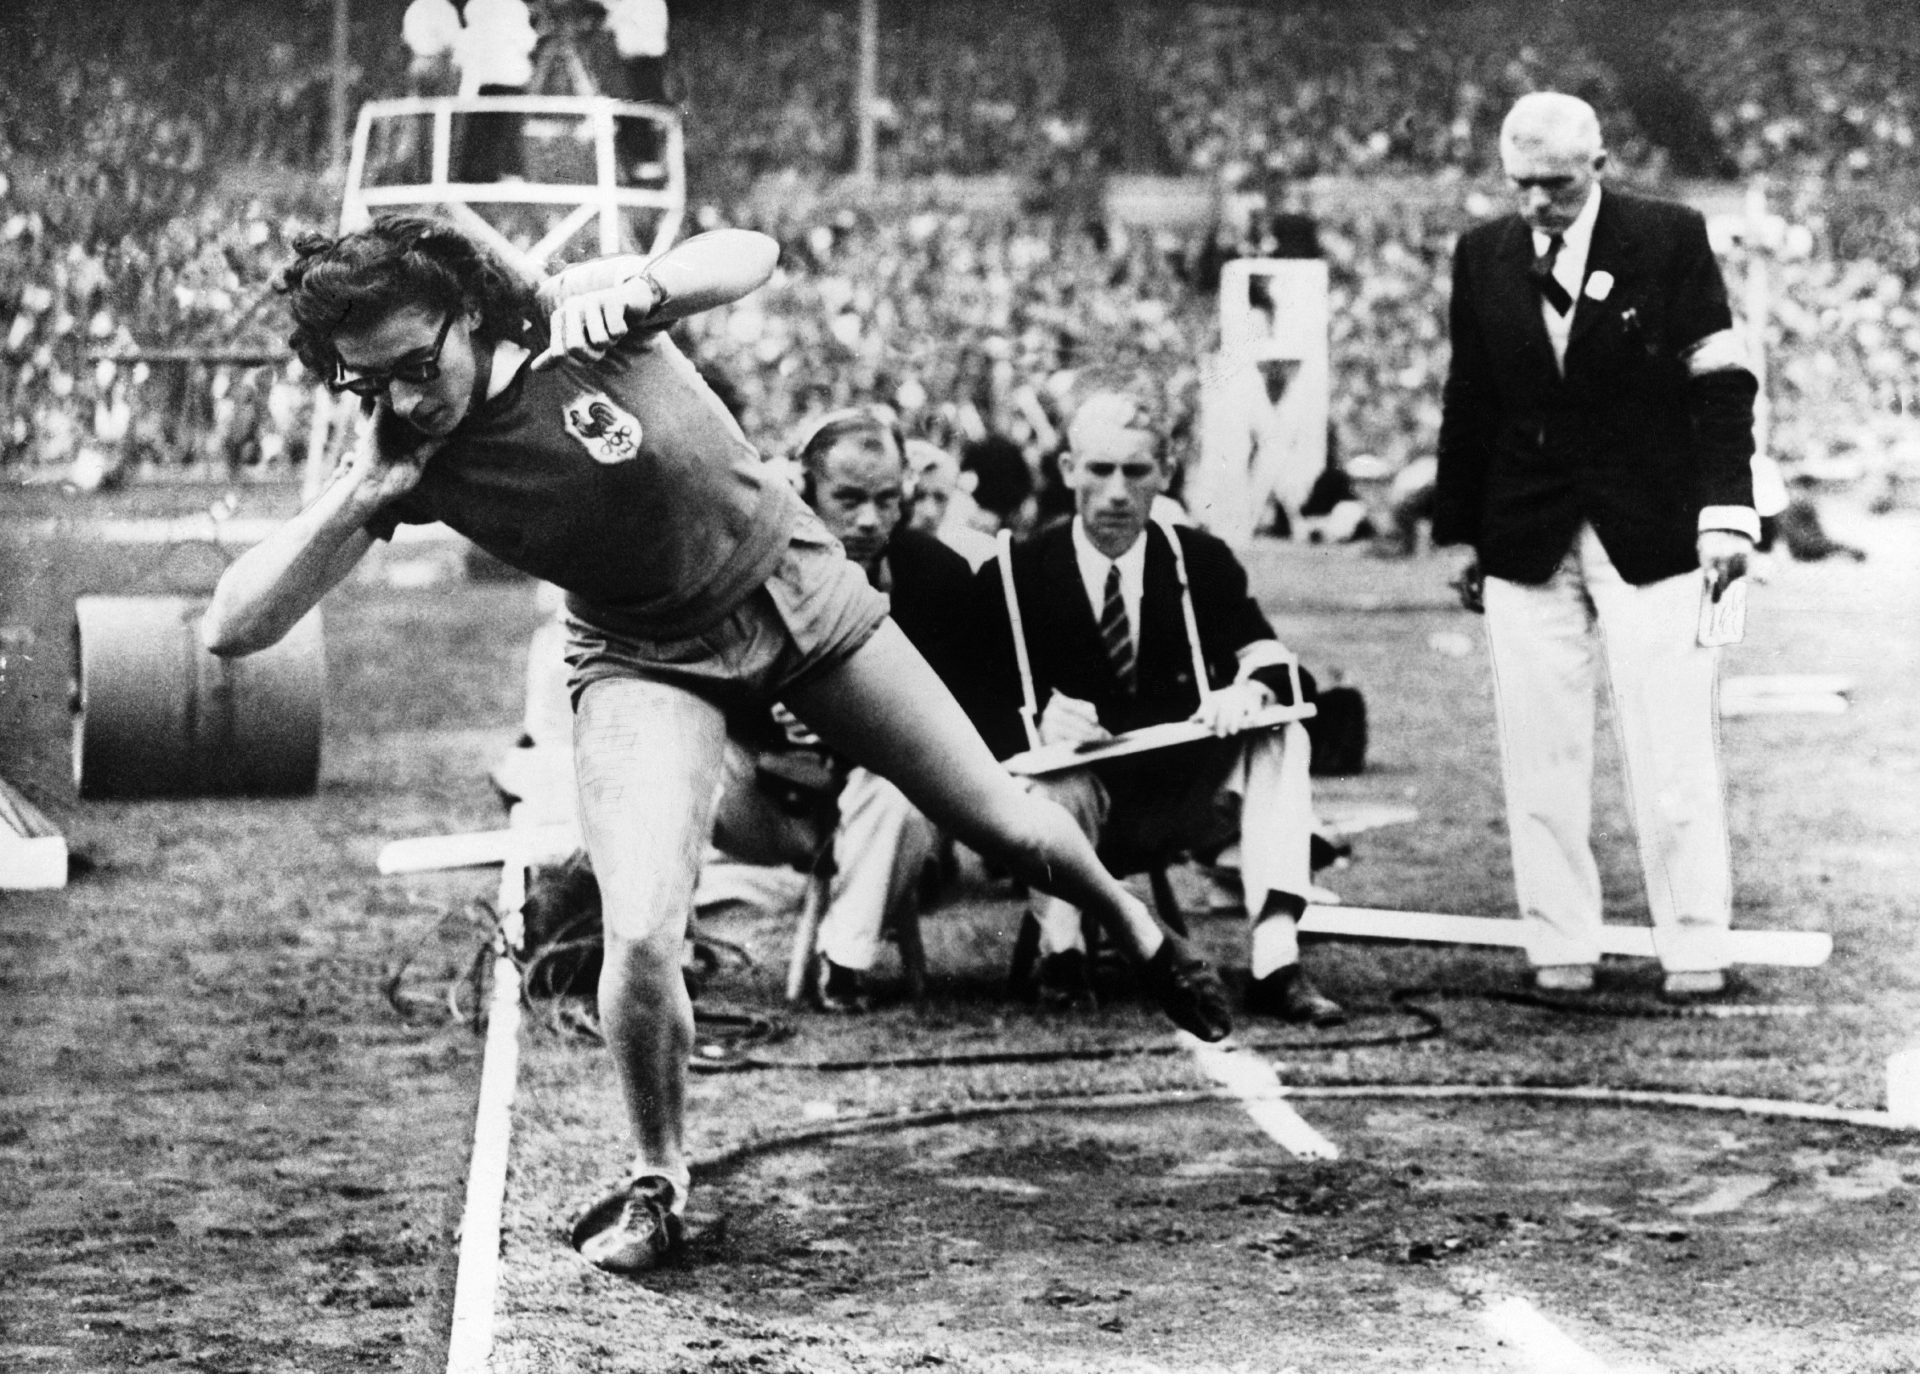 Micheline Ostermeyer, as she takes her gold medal-winning throw in the Olympics shot put at Wembley Stadium, in 1948 Photo: Gamma-Keystone via Getty Images